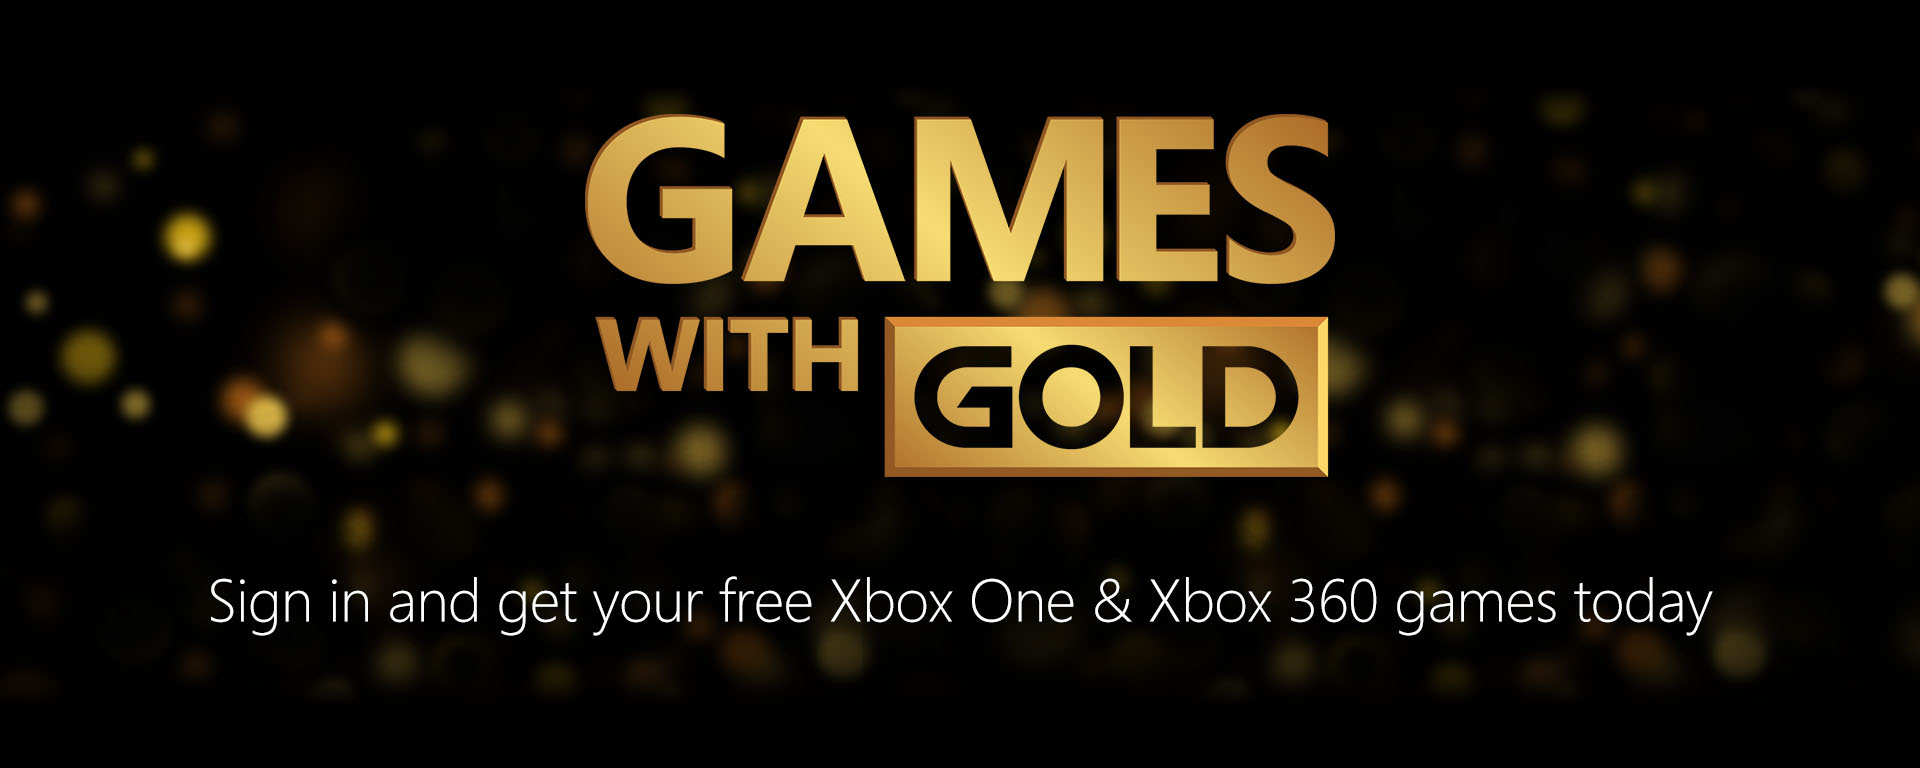 Xbox Live Gold   Games with Gold    Free games